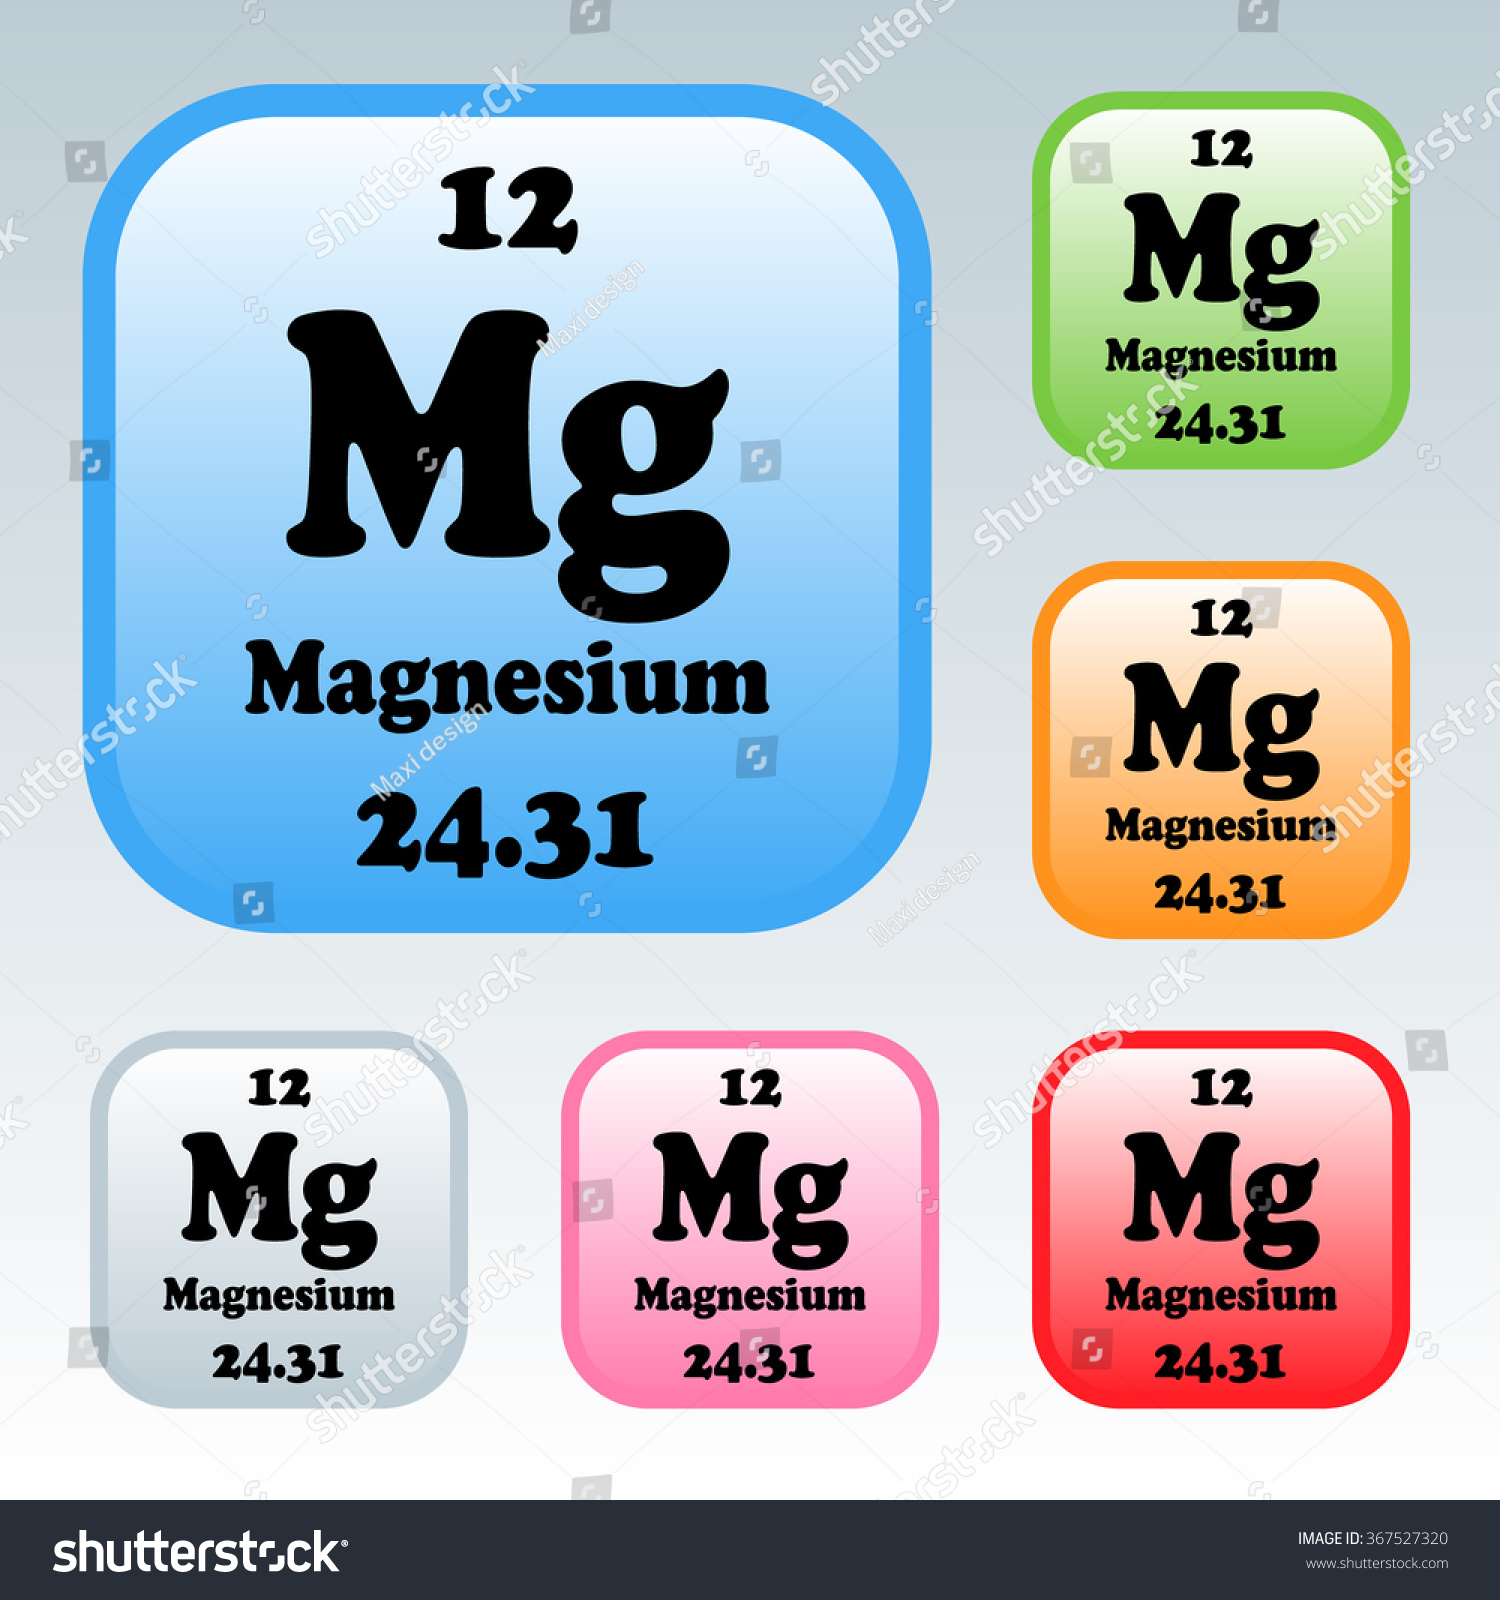 Magnesium periodic table element icon nebraska usa map small periodic table elements magnesium stock vector 367527320 stock vector the periodic table of the elements magnesium 367527320 periodic table elements gamestrikefo Gallery